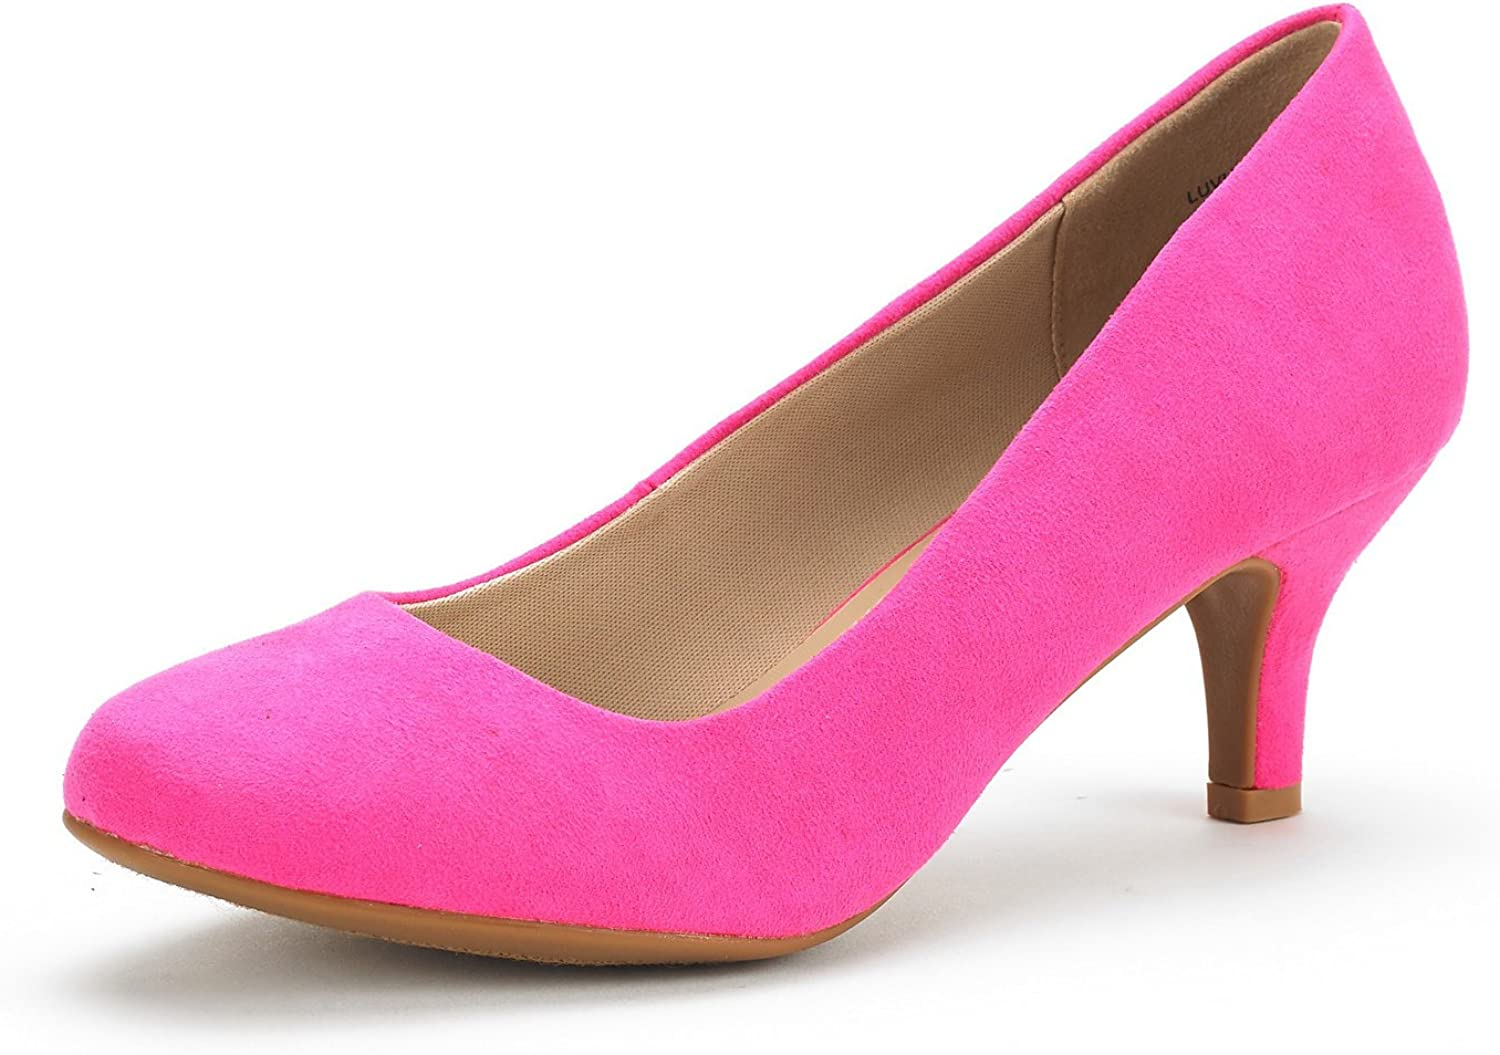 DREAM PAIRS Womens Slip On Low Kitten Heels Round Toe Pump Court Shoes Luvly Fuchsia Suede Size 7 US// 5 UK